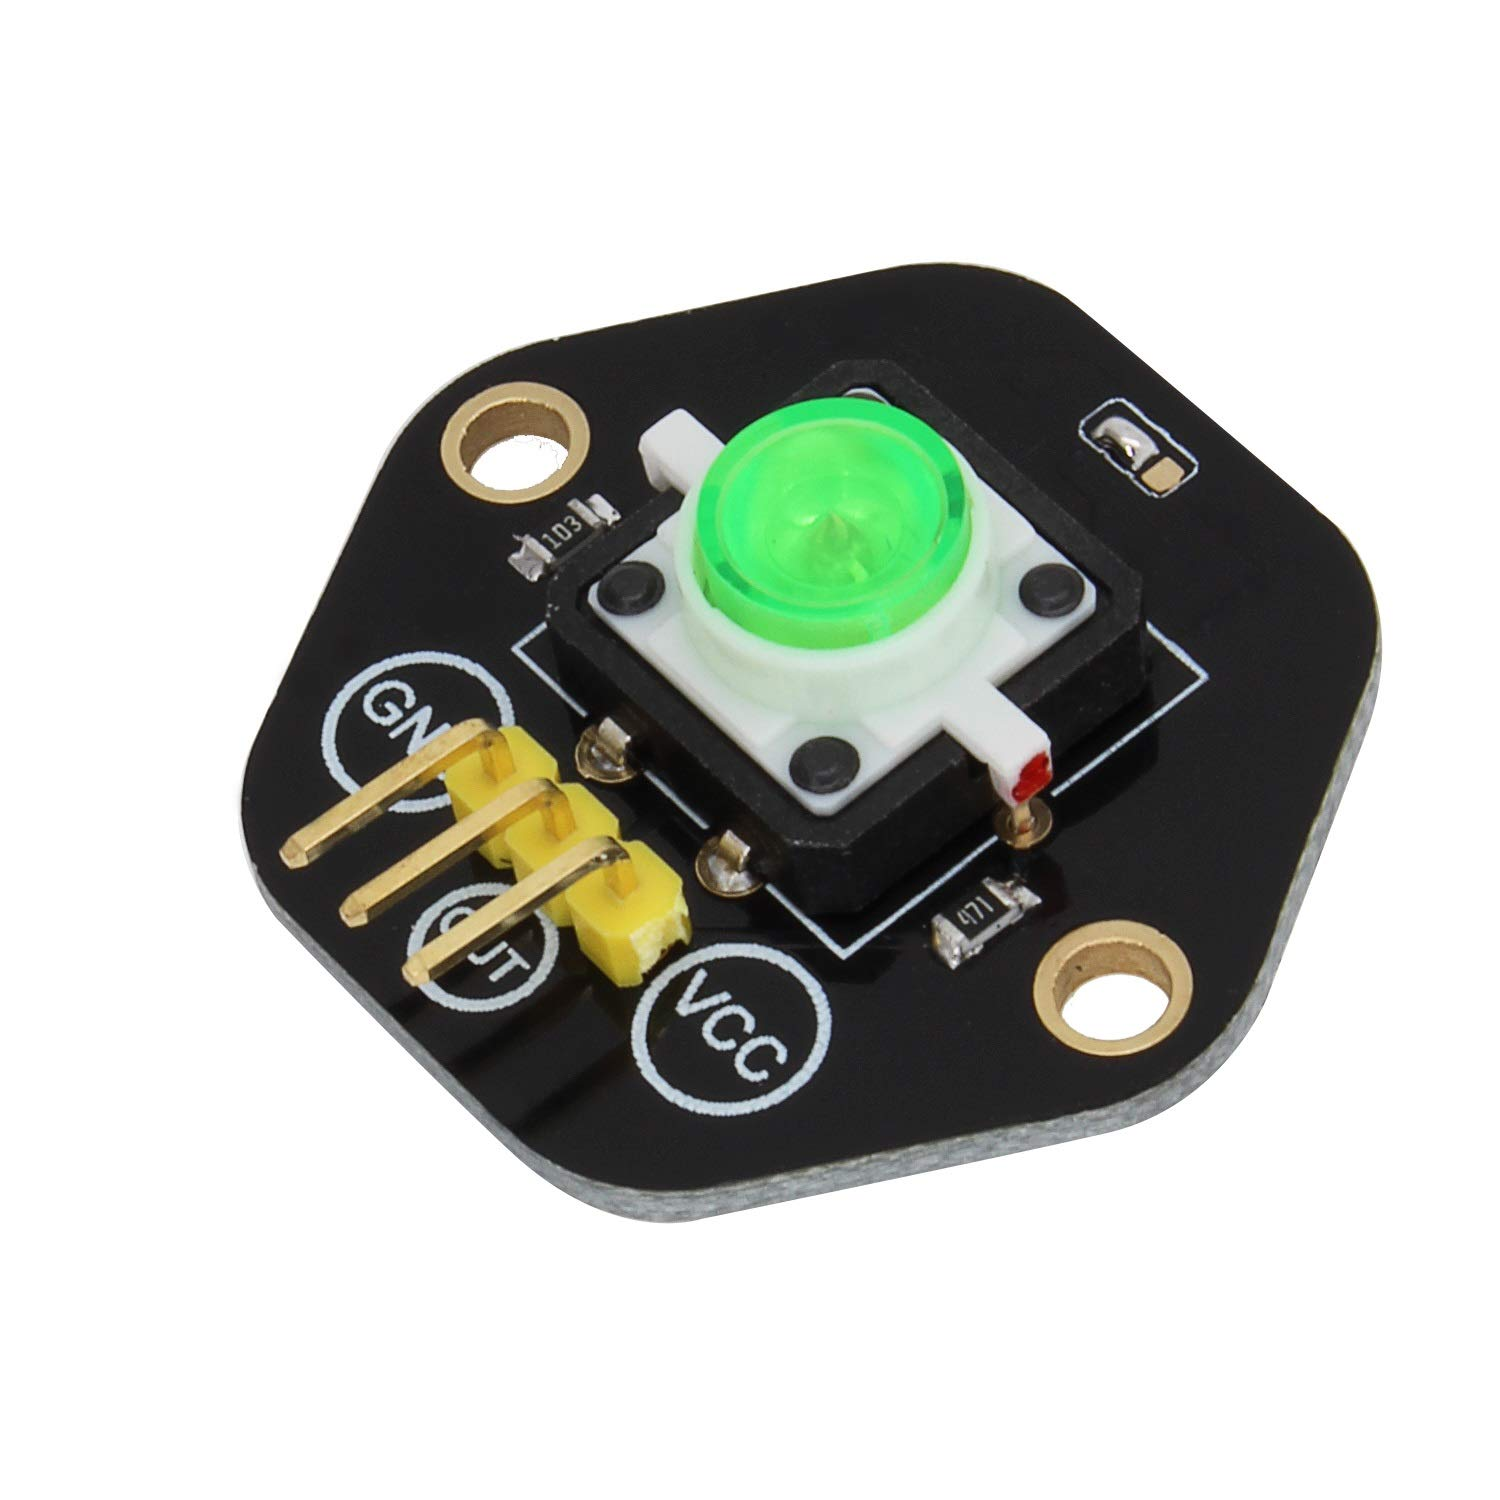 FOR-Arduino Arduino Kits LDTR-RM012//K Digital Push Button with LED/ Indicator/ Light Module Kit